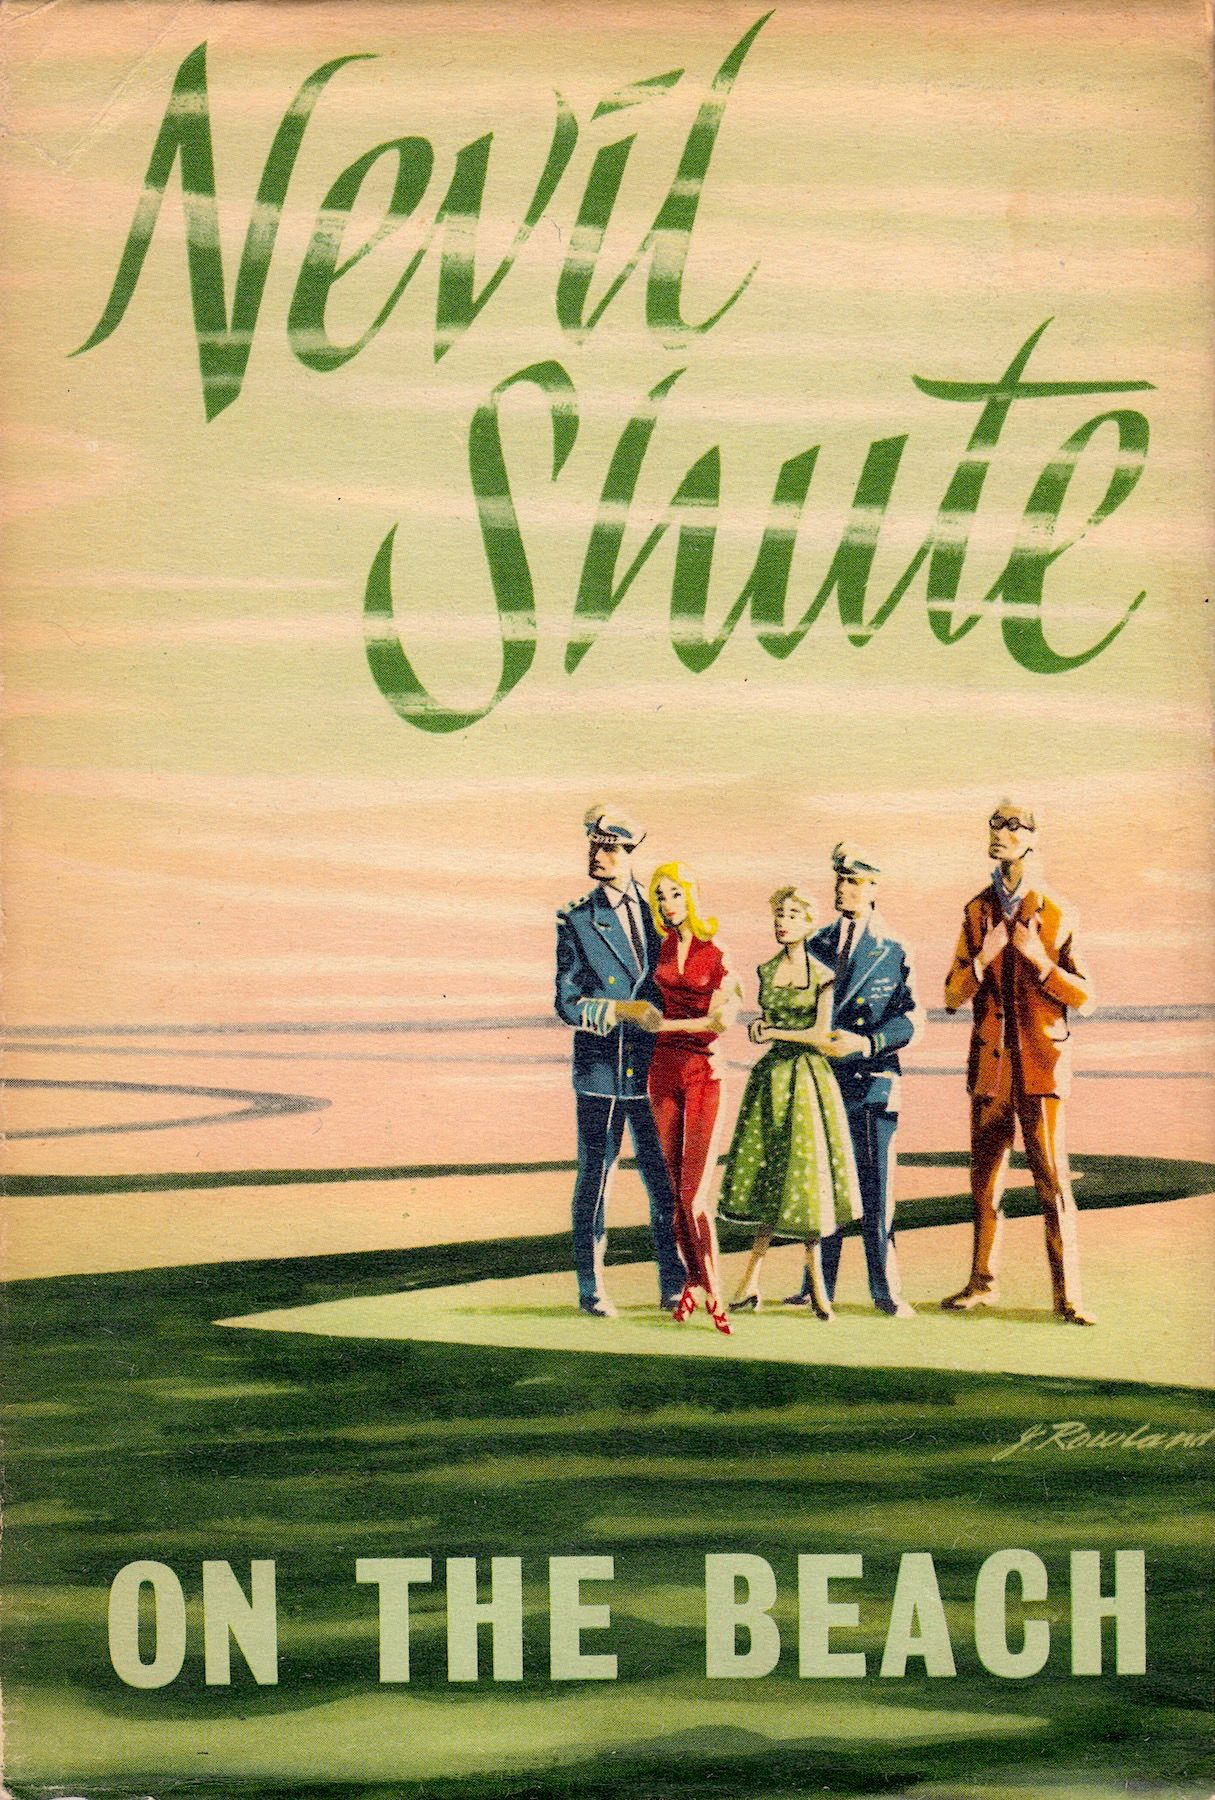 ON THE BEACH By NEVIL SHUTE 1st Australian Edition 1957 Book Jacket